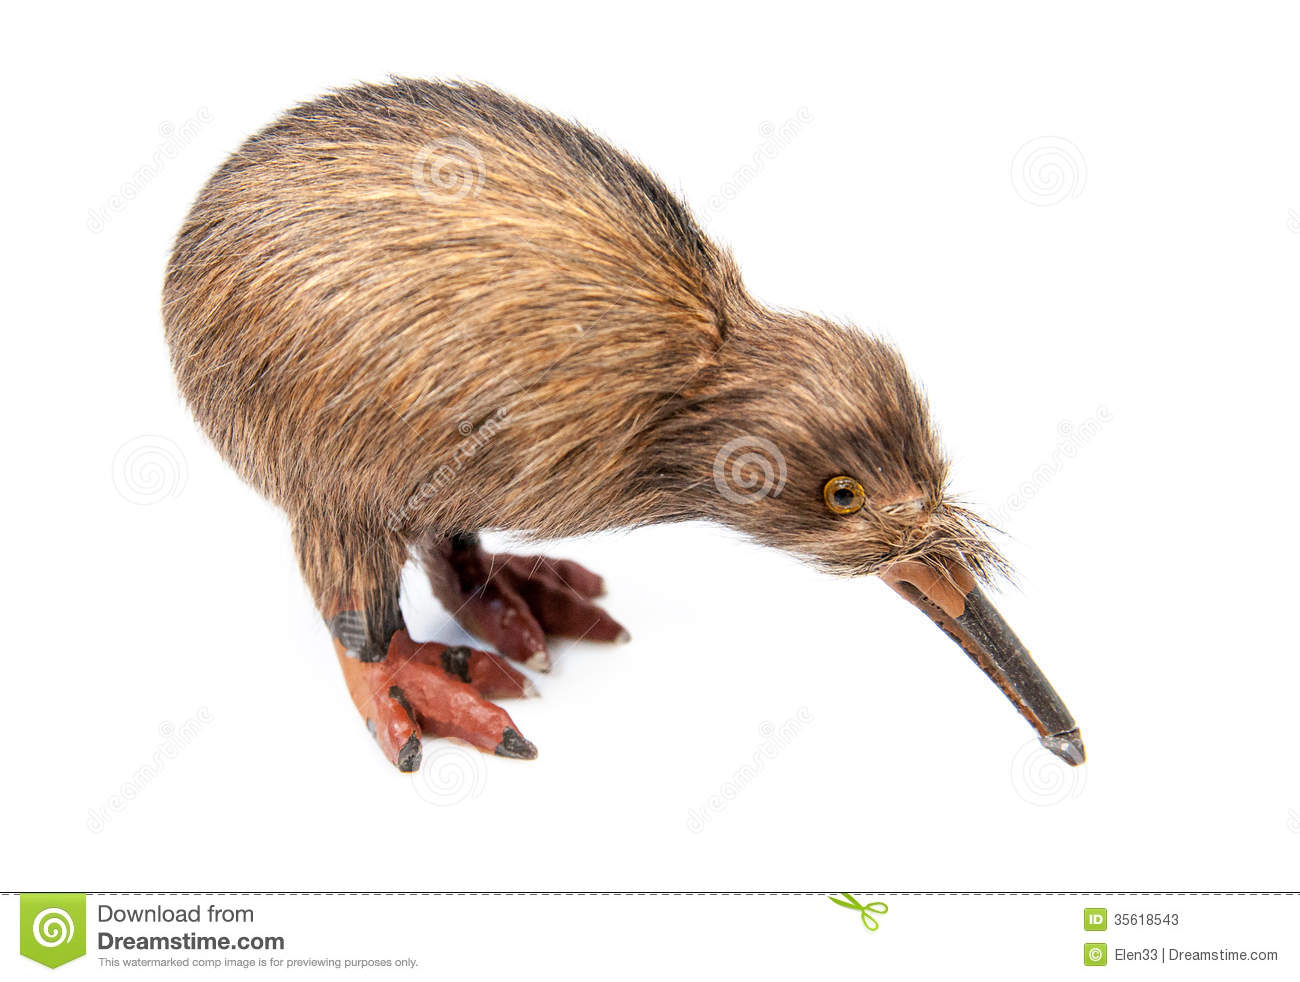 Kiwi bird toy isolated on the white background.